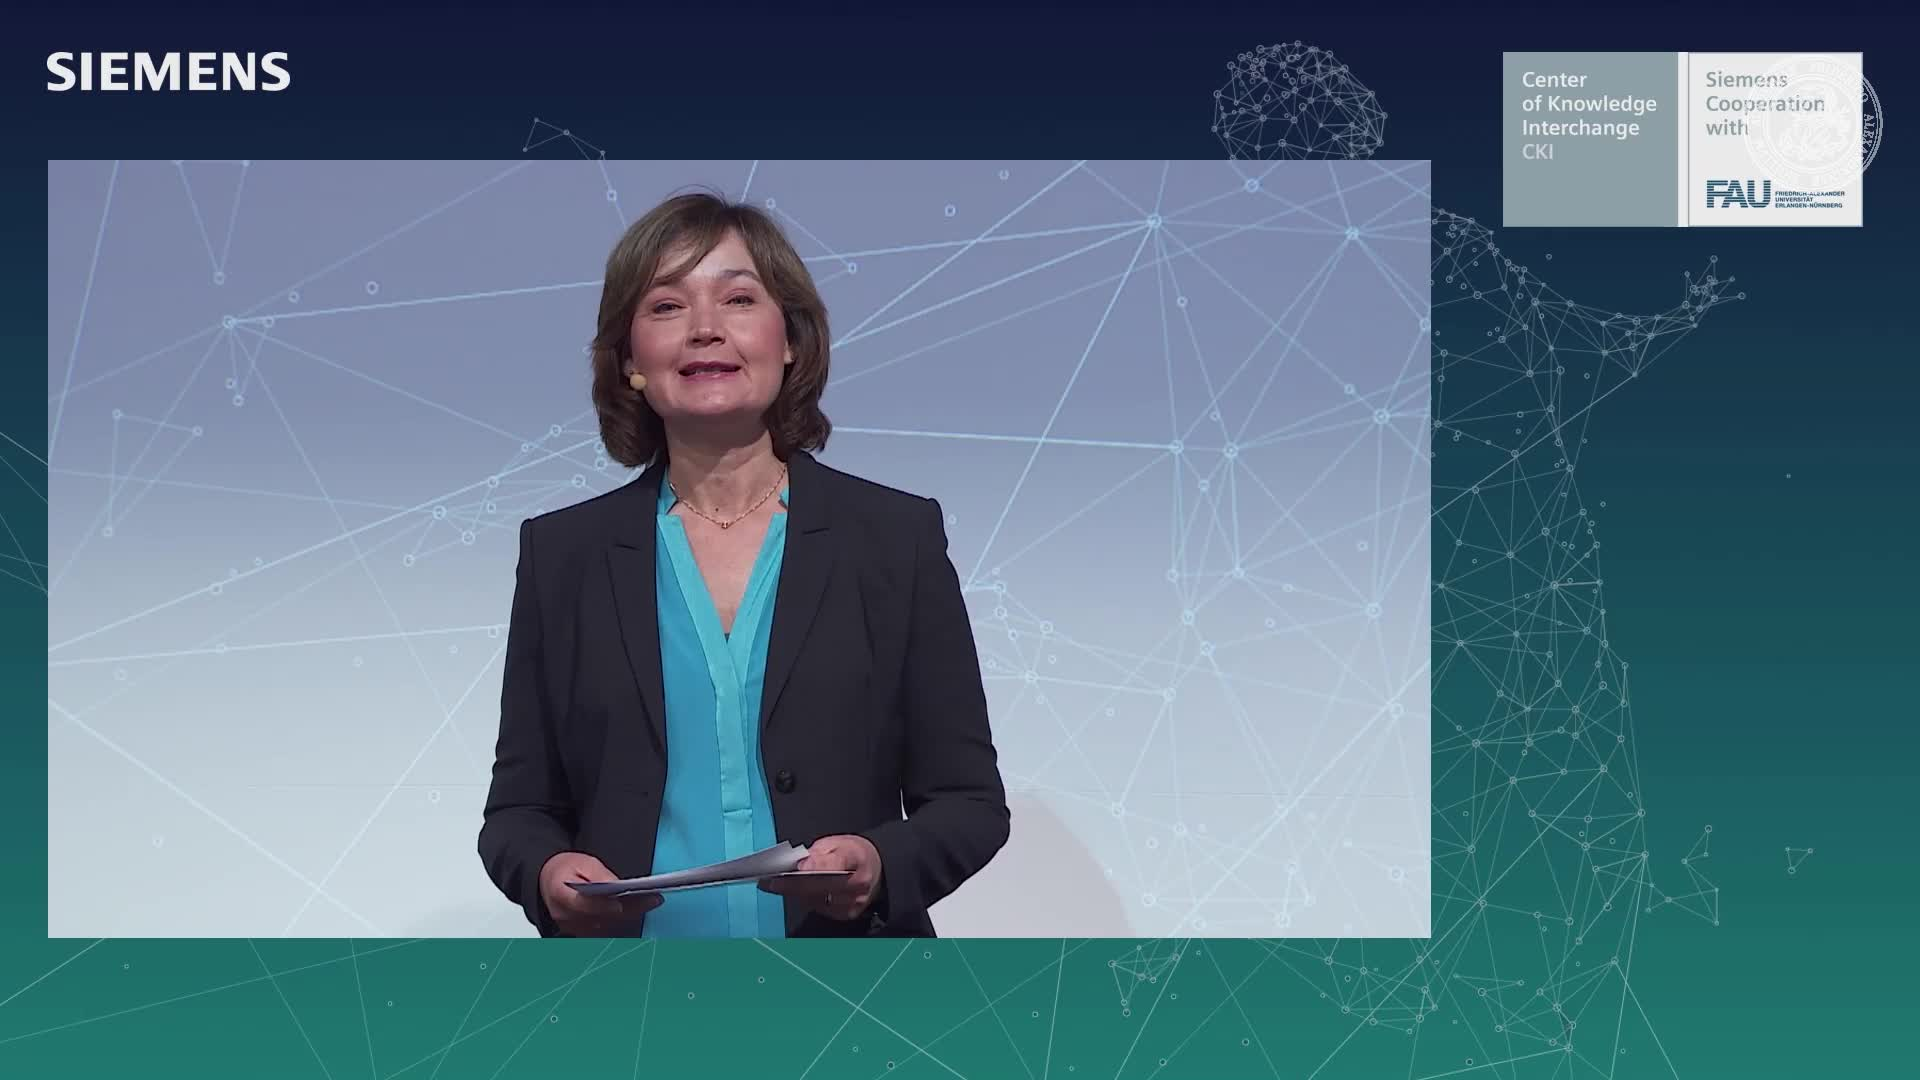 Hybrid CKI Conference - Introduction preview image